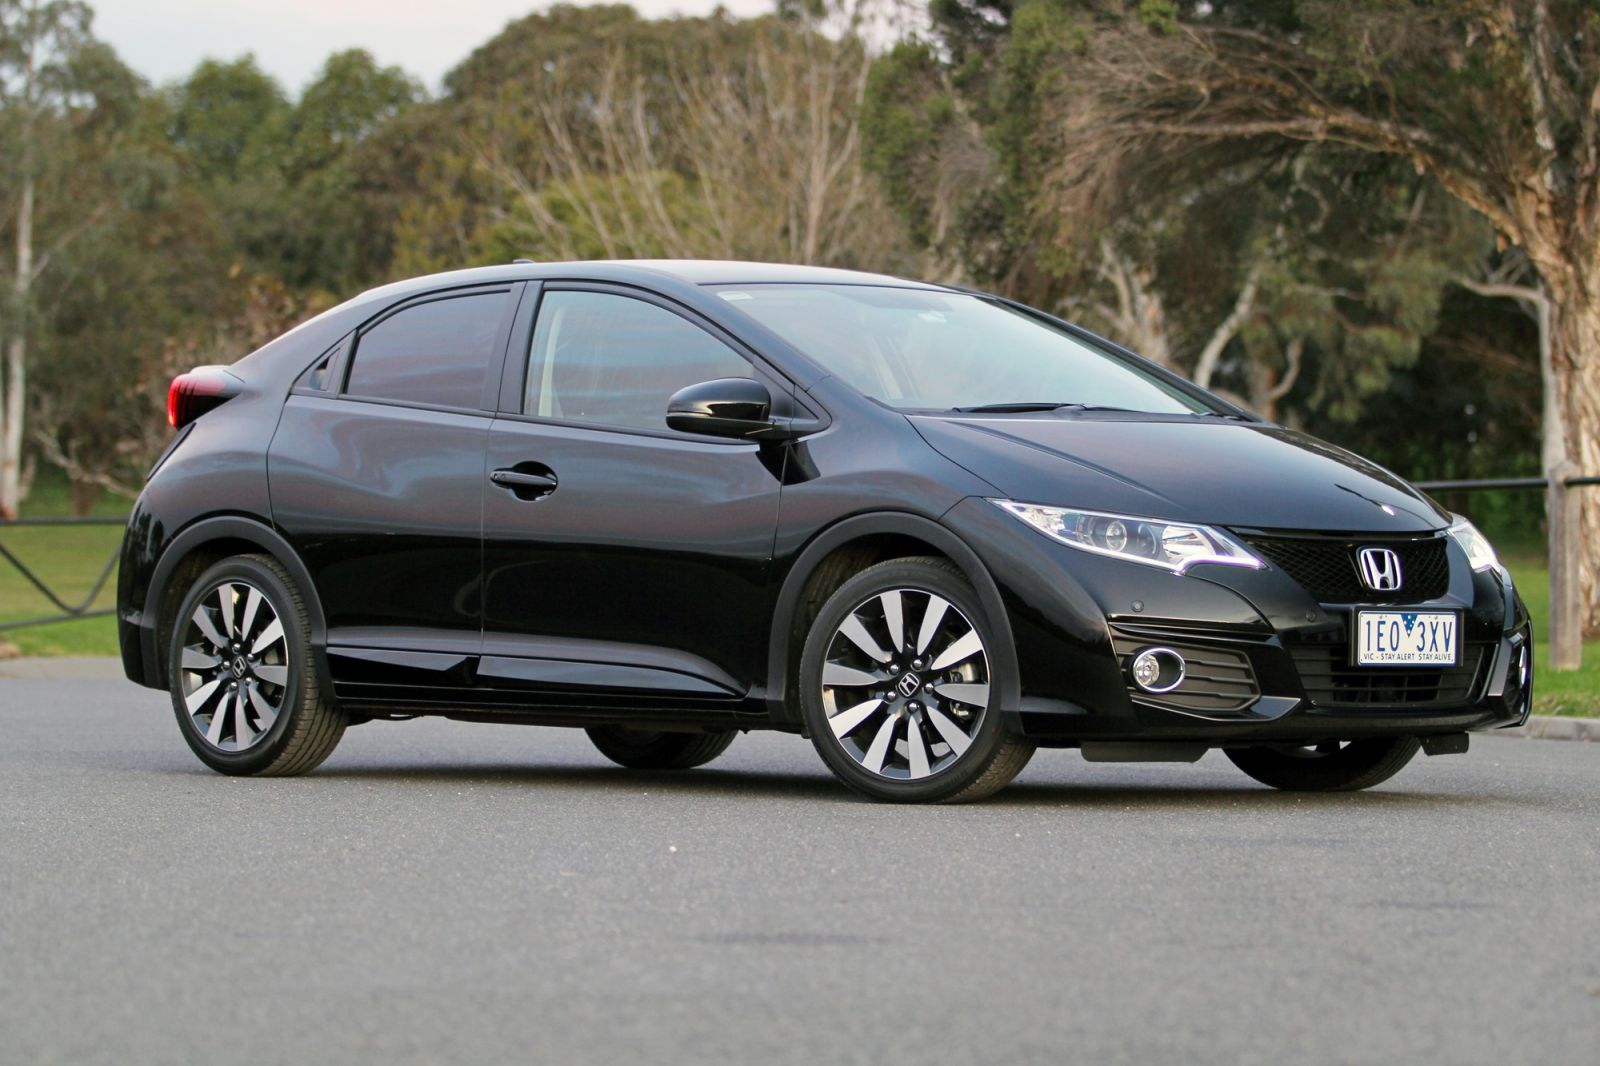 2015 Honda Civic VTi-LN Review: The Price Is Right? Wrong...